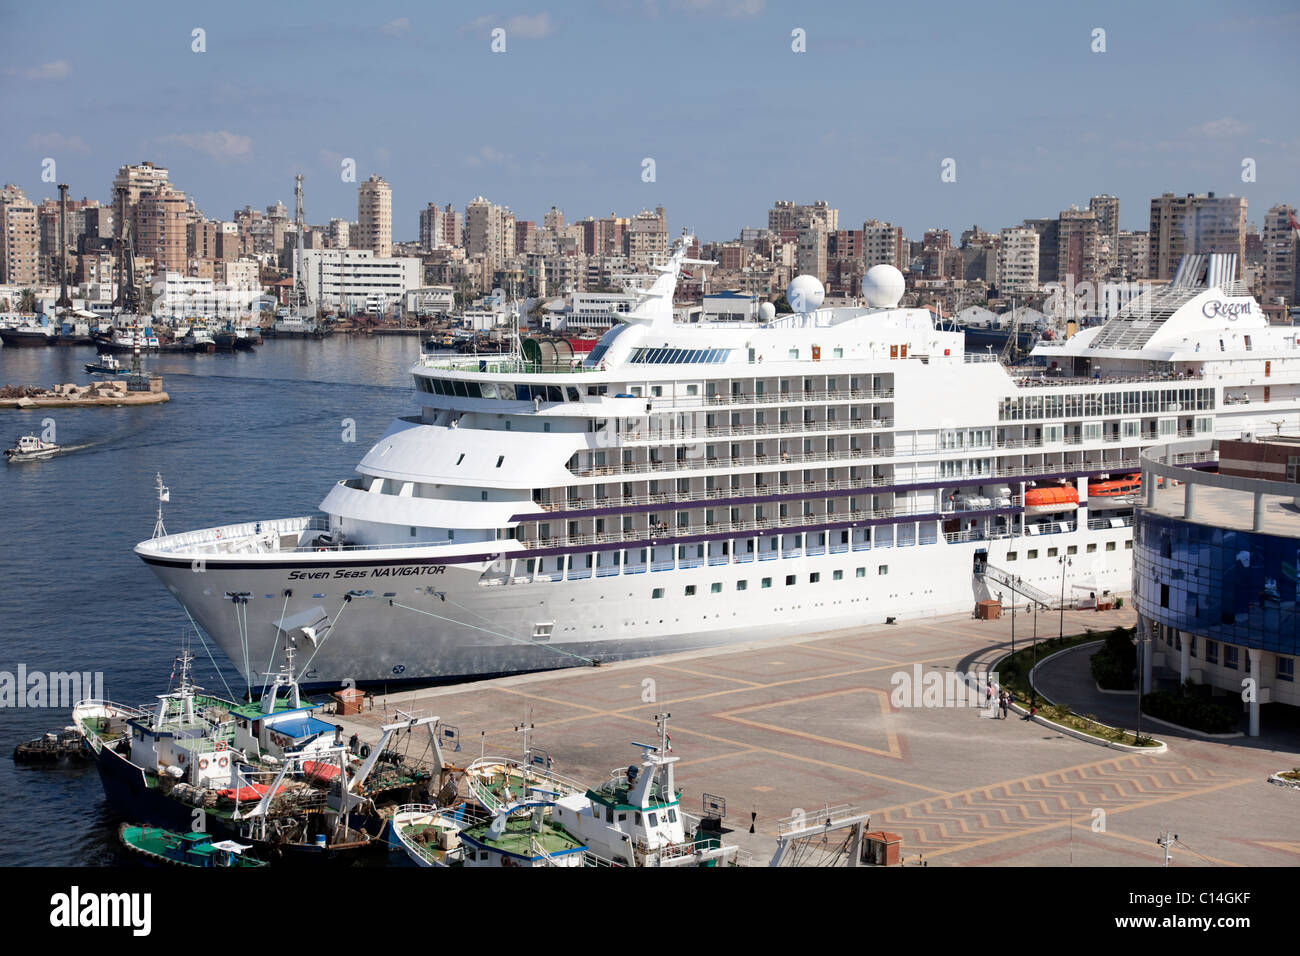 The cruise ship Seven Seas Navigator in the west harbor of Alexandria in Egypt. - Stock Image